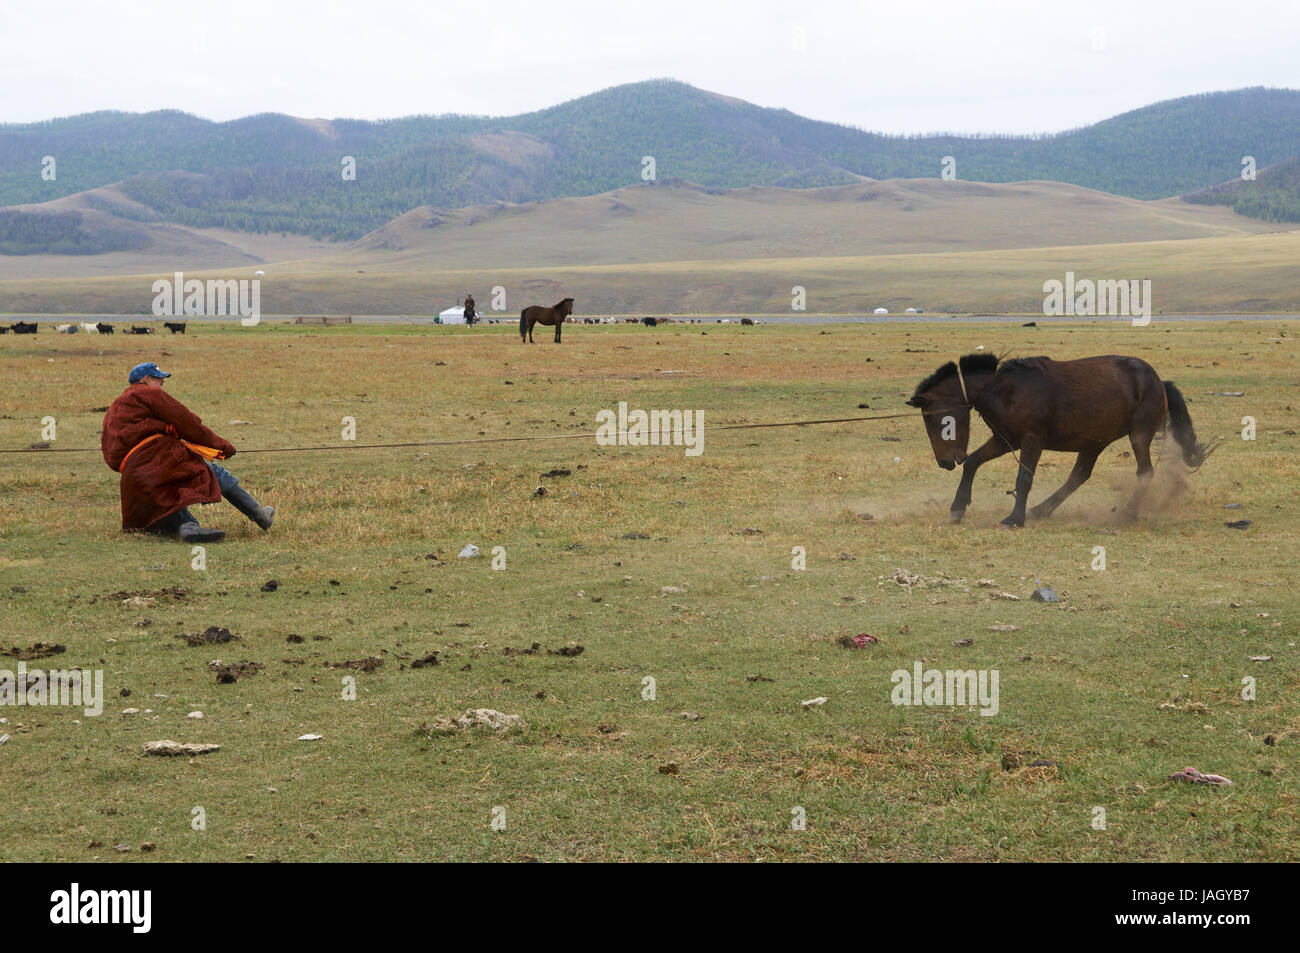 Mongolia,Central Asia,Ovorkhangai province,historical Orkhon valley,UNESCO world heritage,nomad,man,horse catch,tame, Stock Photo